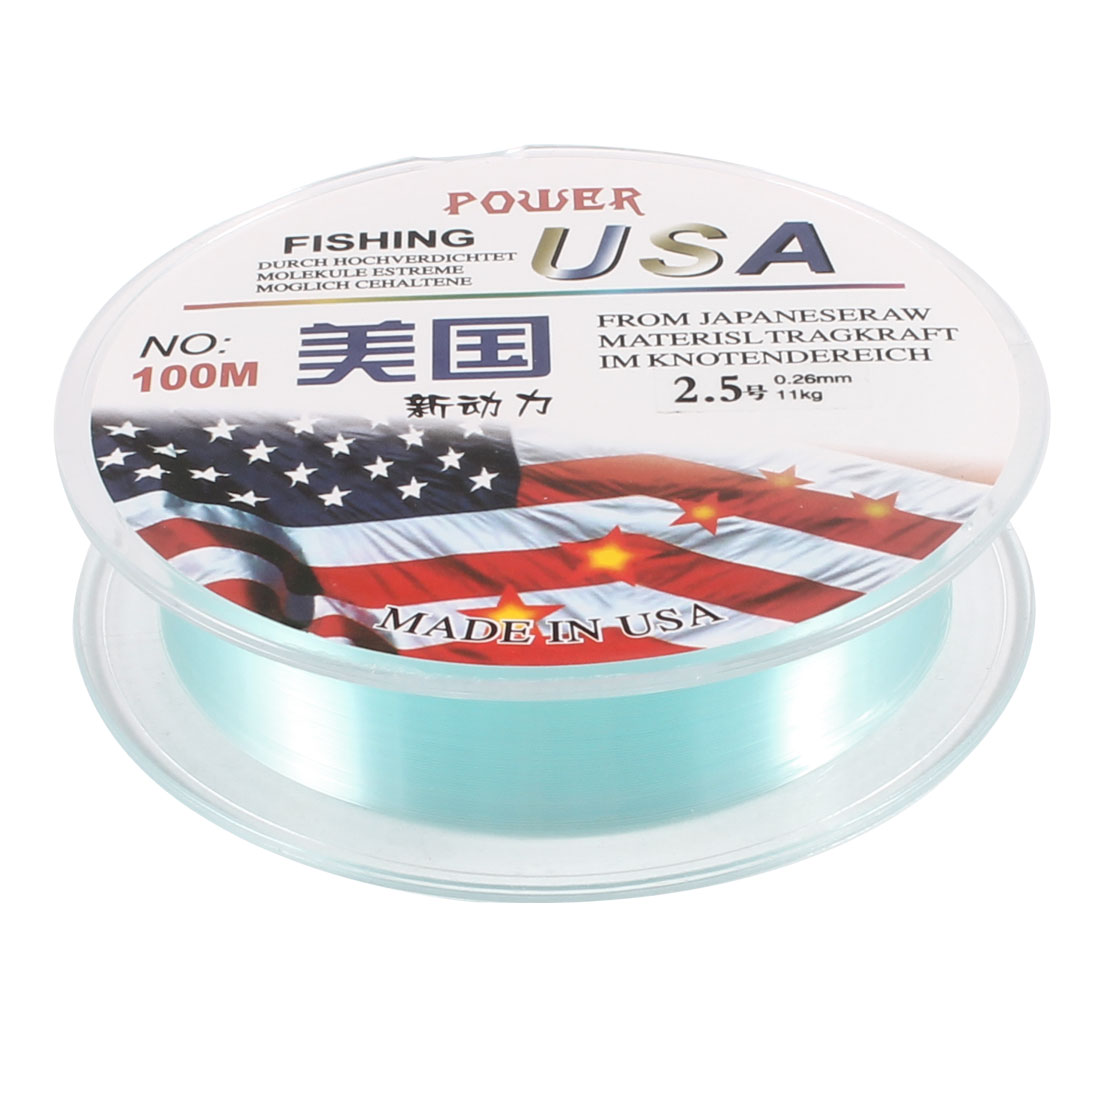 2.5# 0.26mm Dia 11Kg Cyan Nylon Freshwater Fishing Line Thread Reel 100M